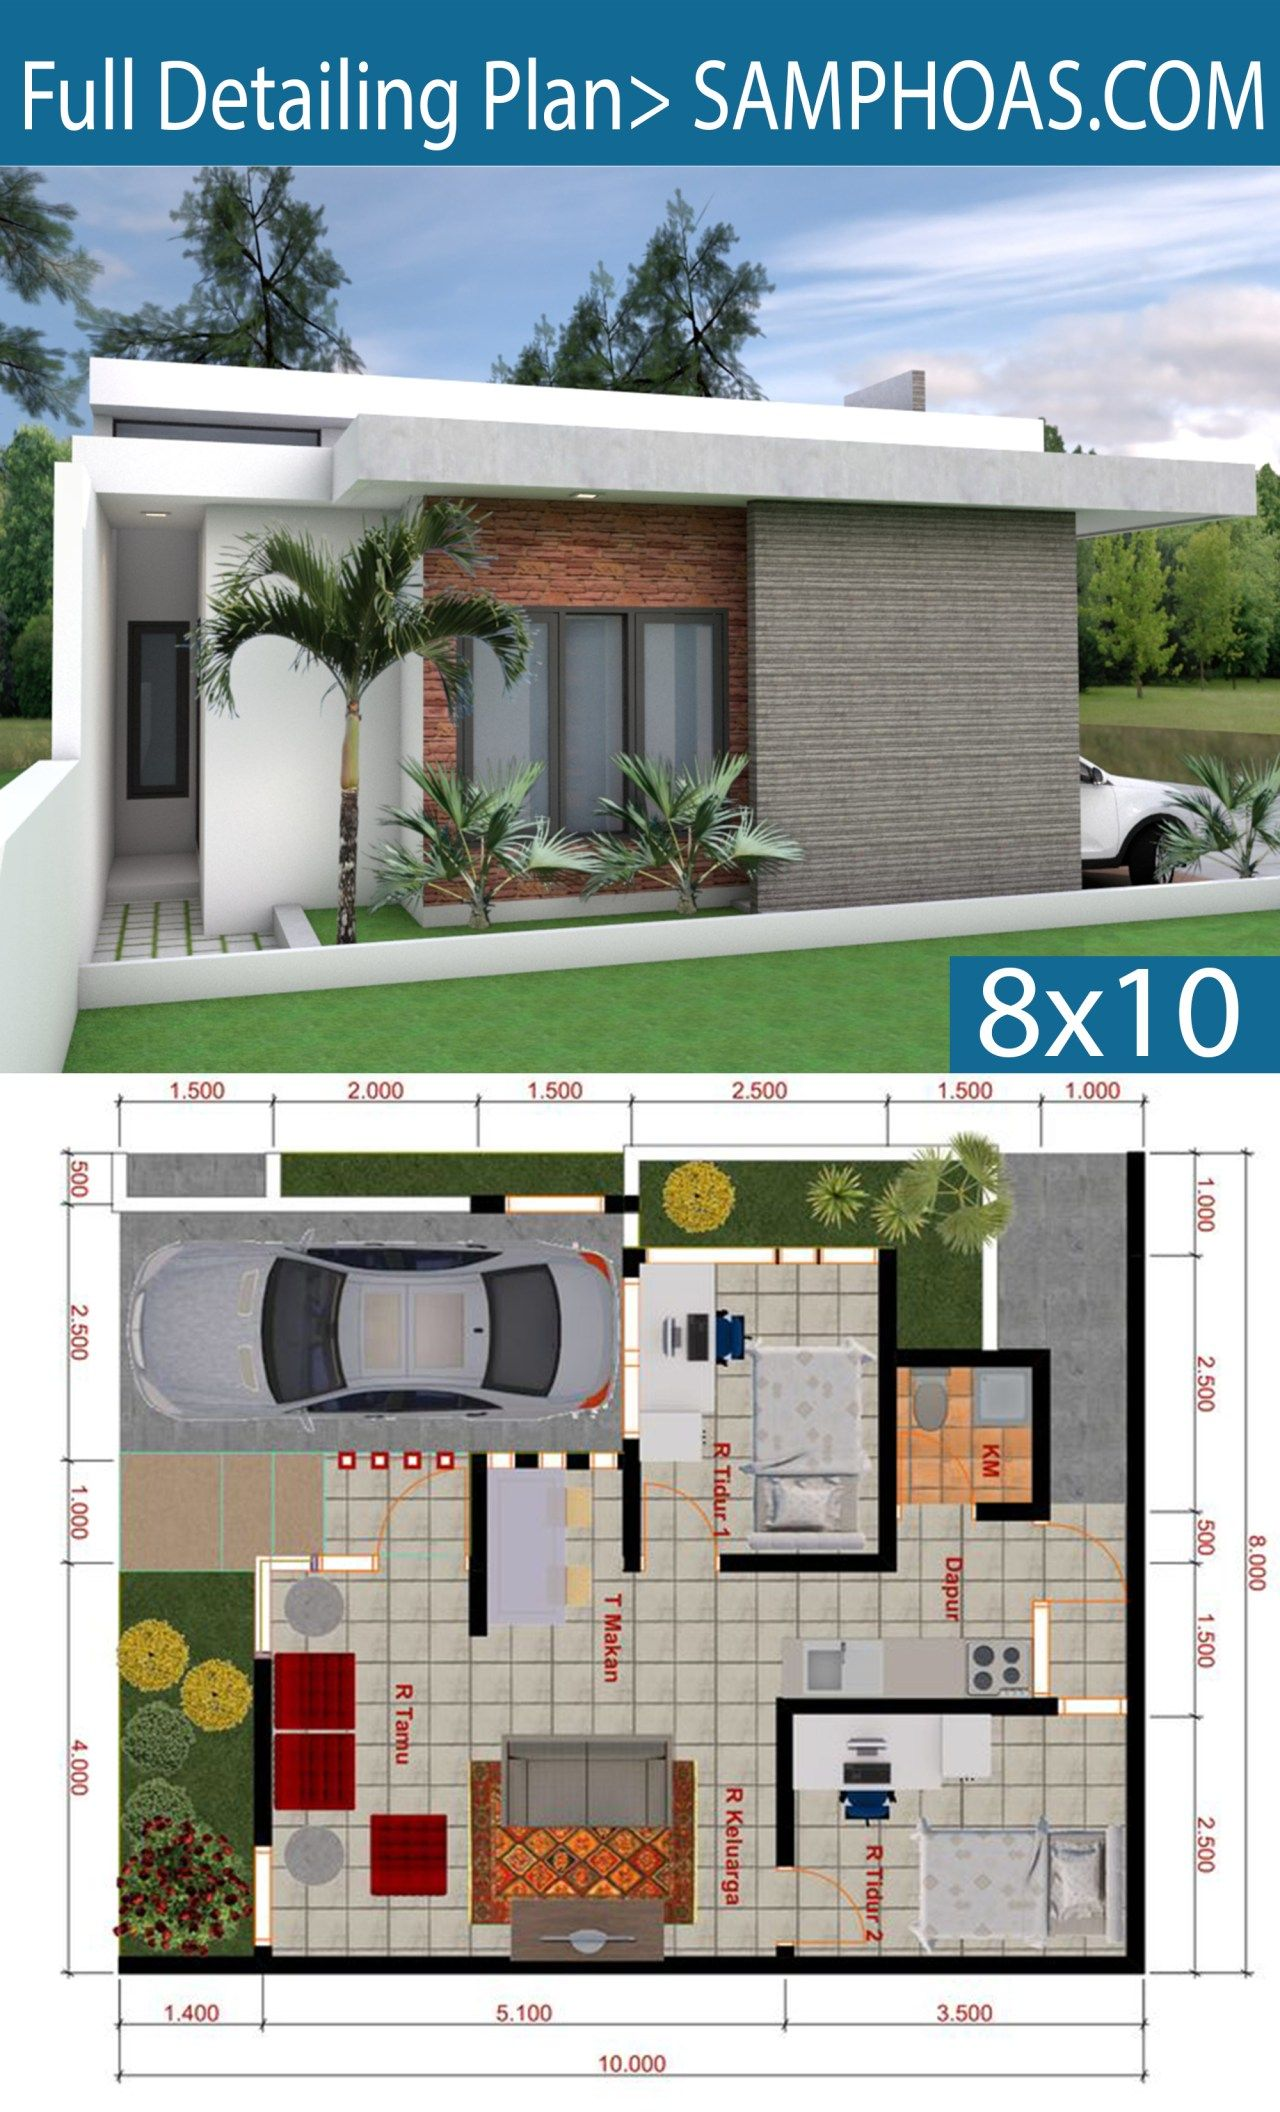 Sketchup House Modeling Idea From Photo 8x10m Samphoas Plan Simple House Design Small House Elevation Design House Plans Mansion